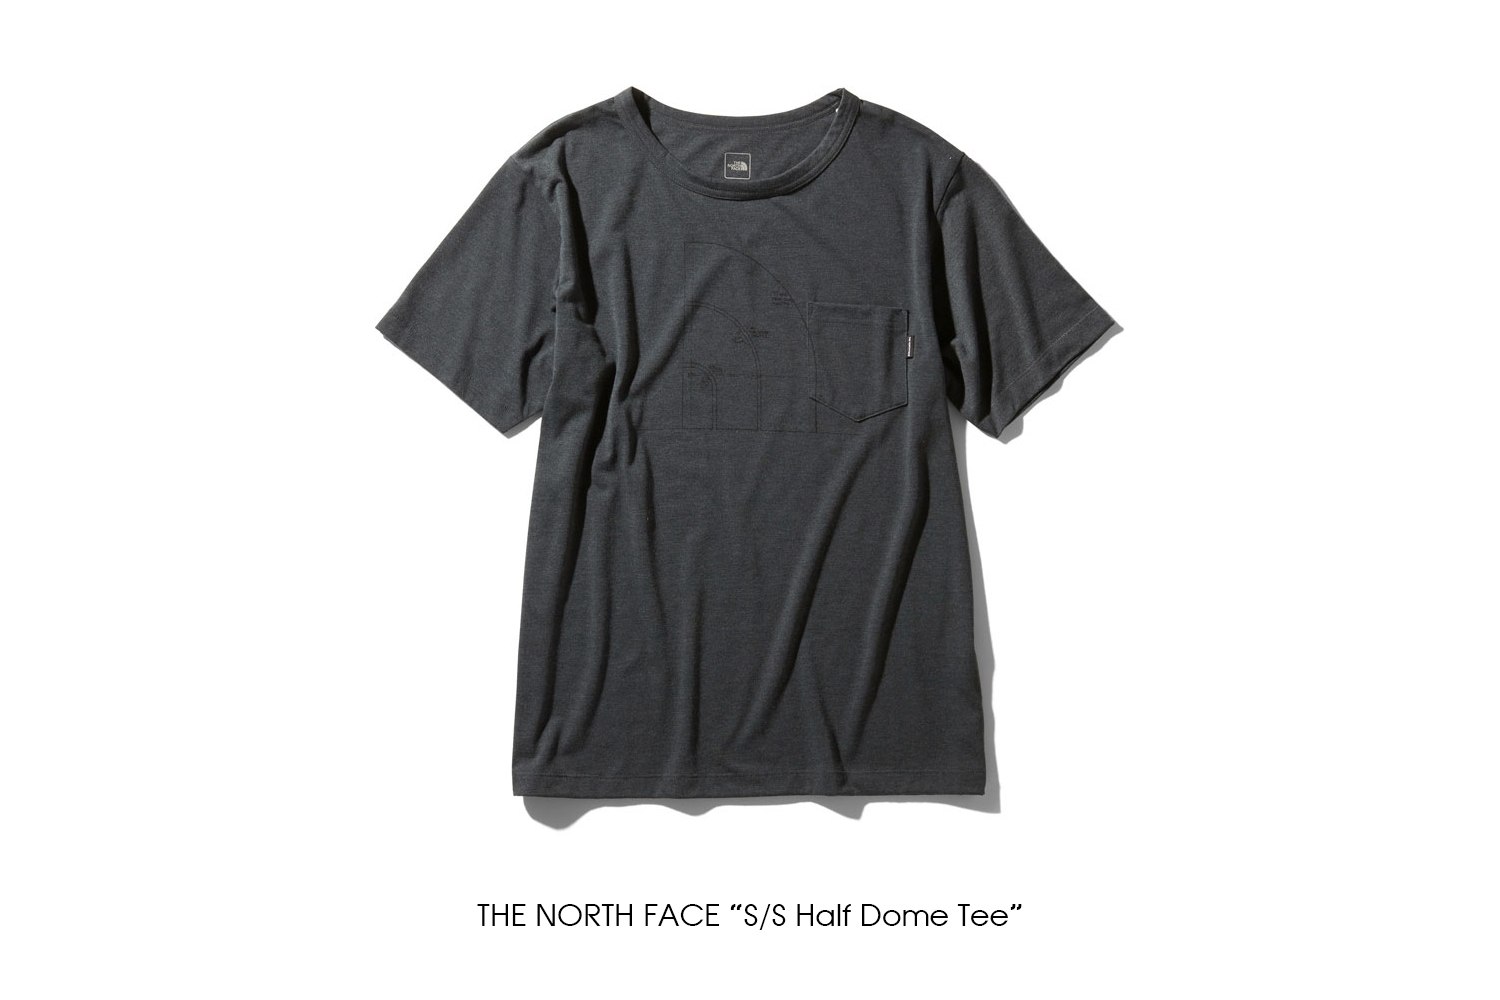 "THE NORTH FACE ""S/S Half Dome Tee"""